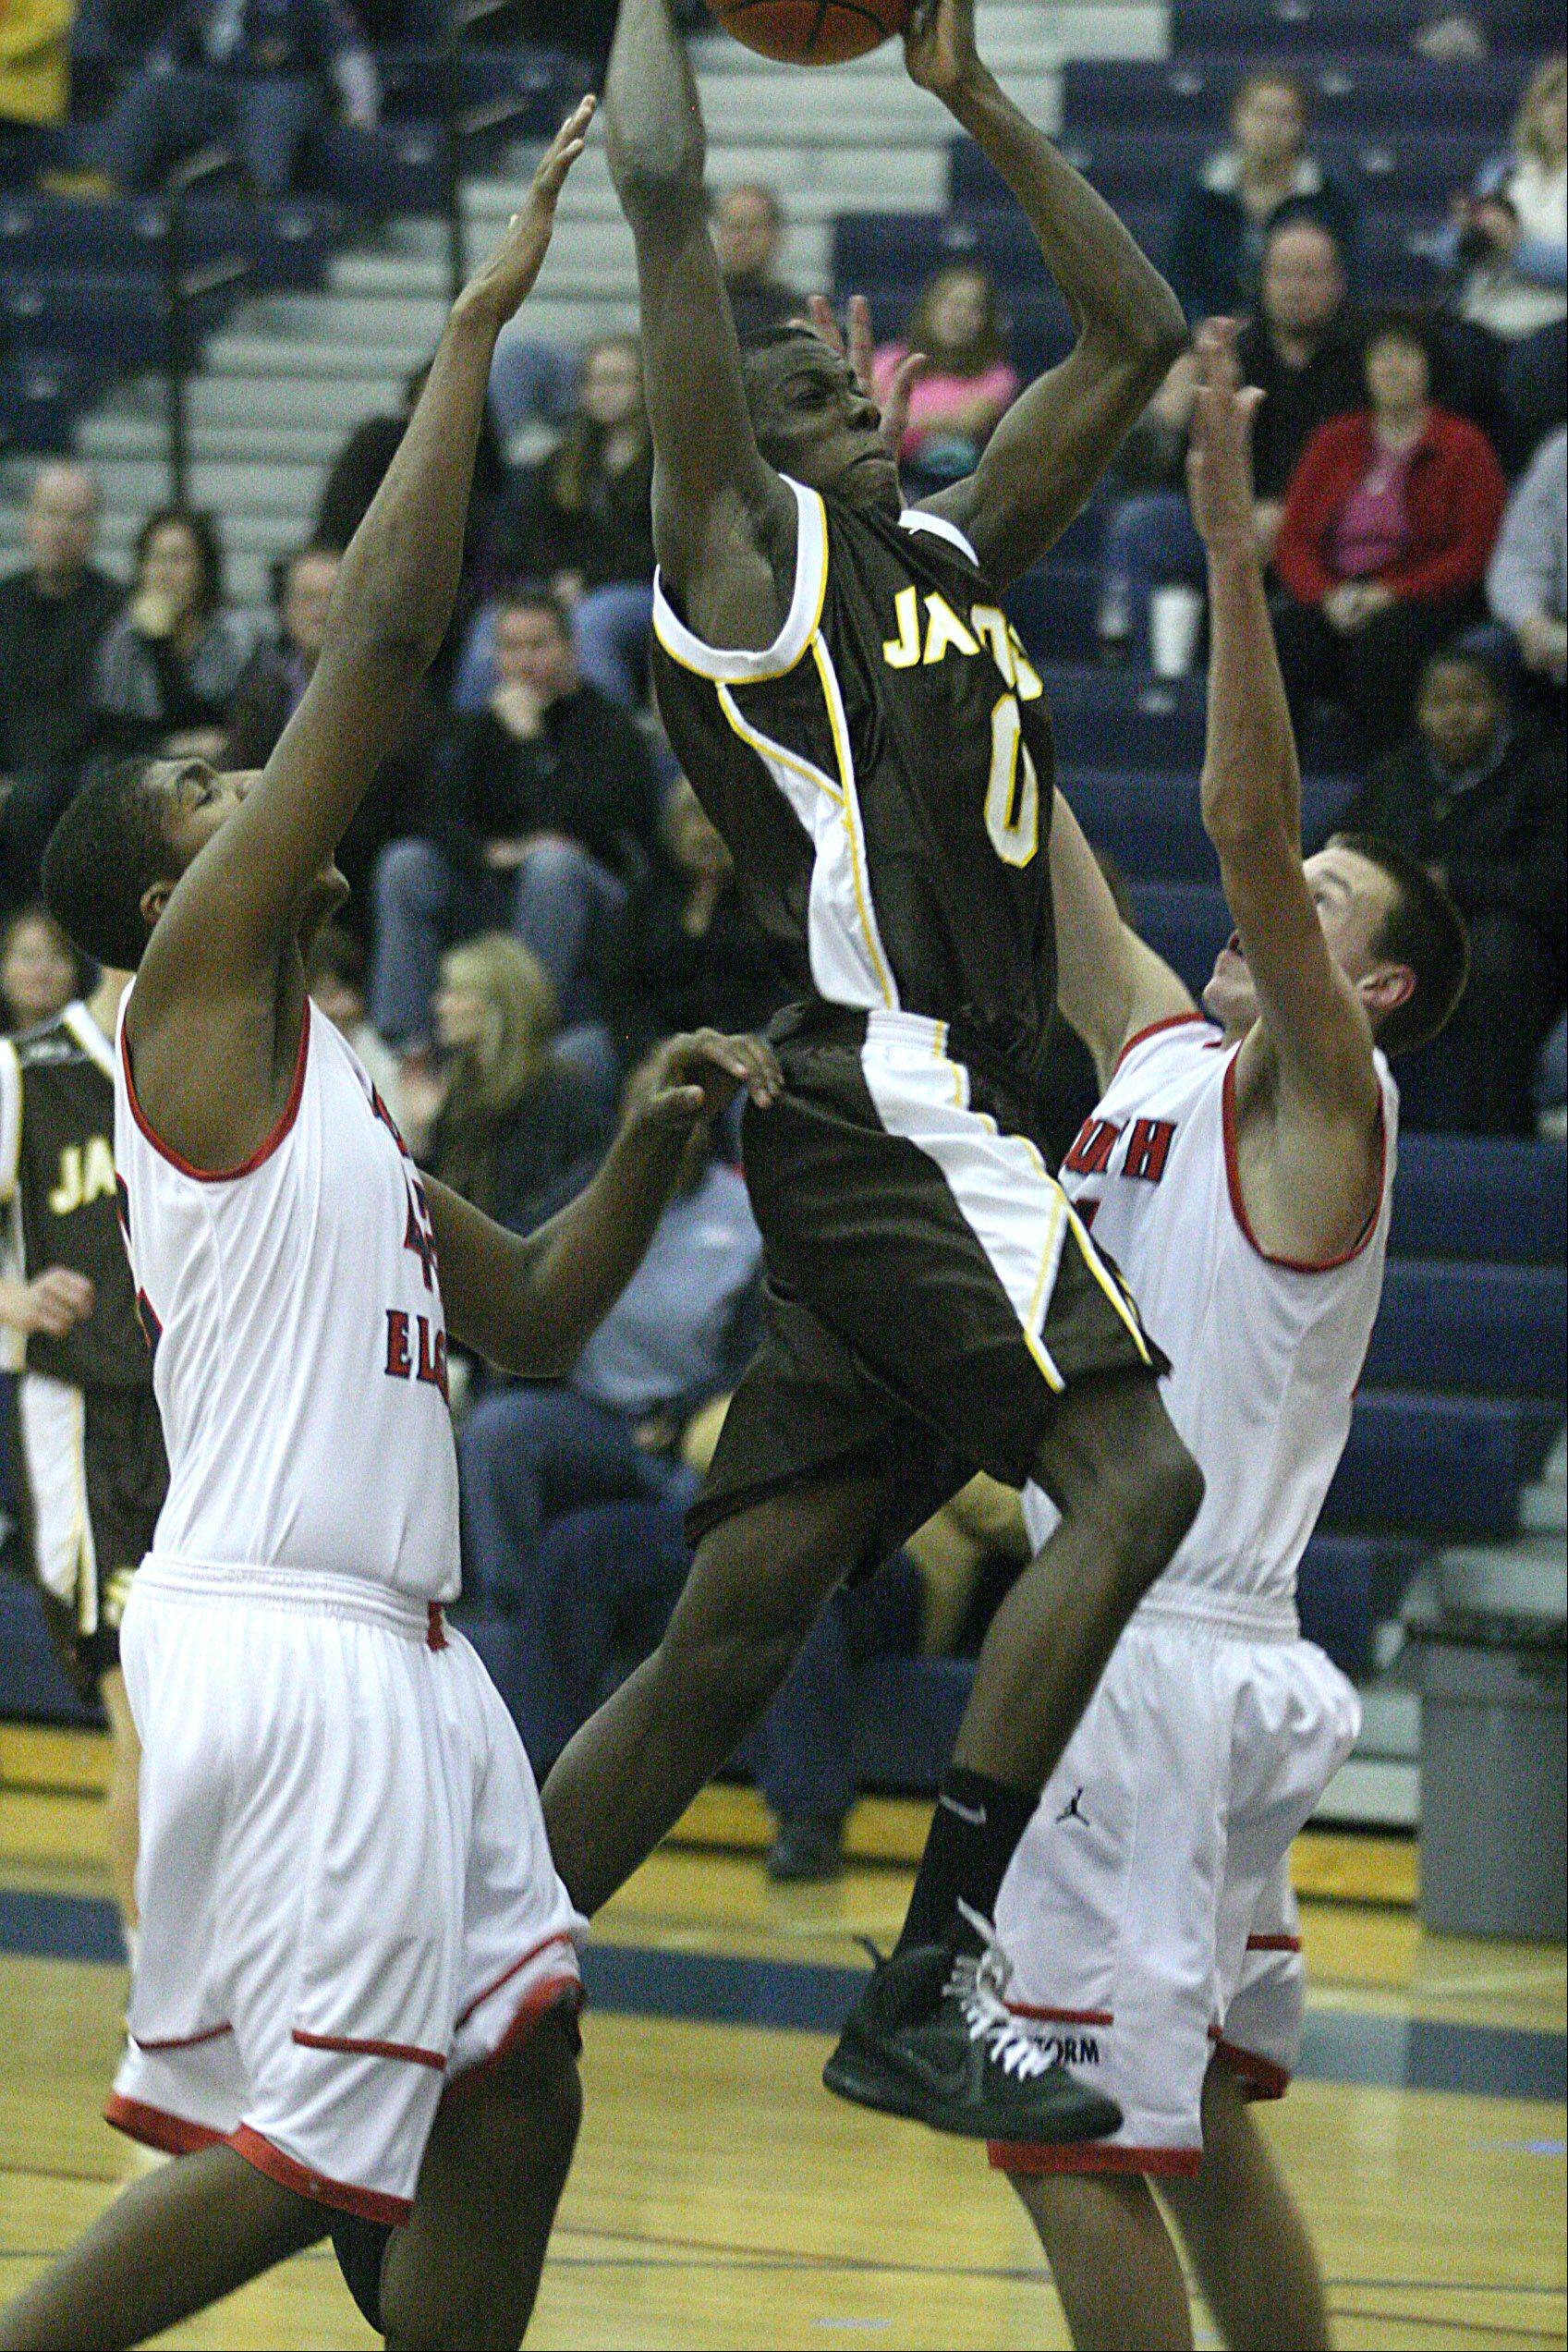 Jacobs' Lake Ojo, center, splits the defense of South Elgin's Robert Grant, left, and Brian Winsel, right.